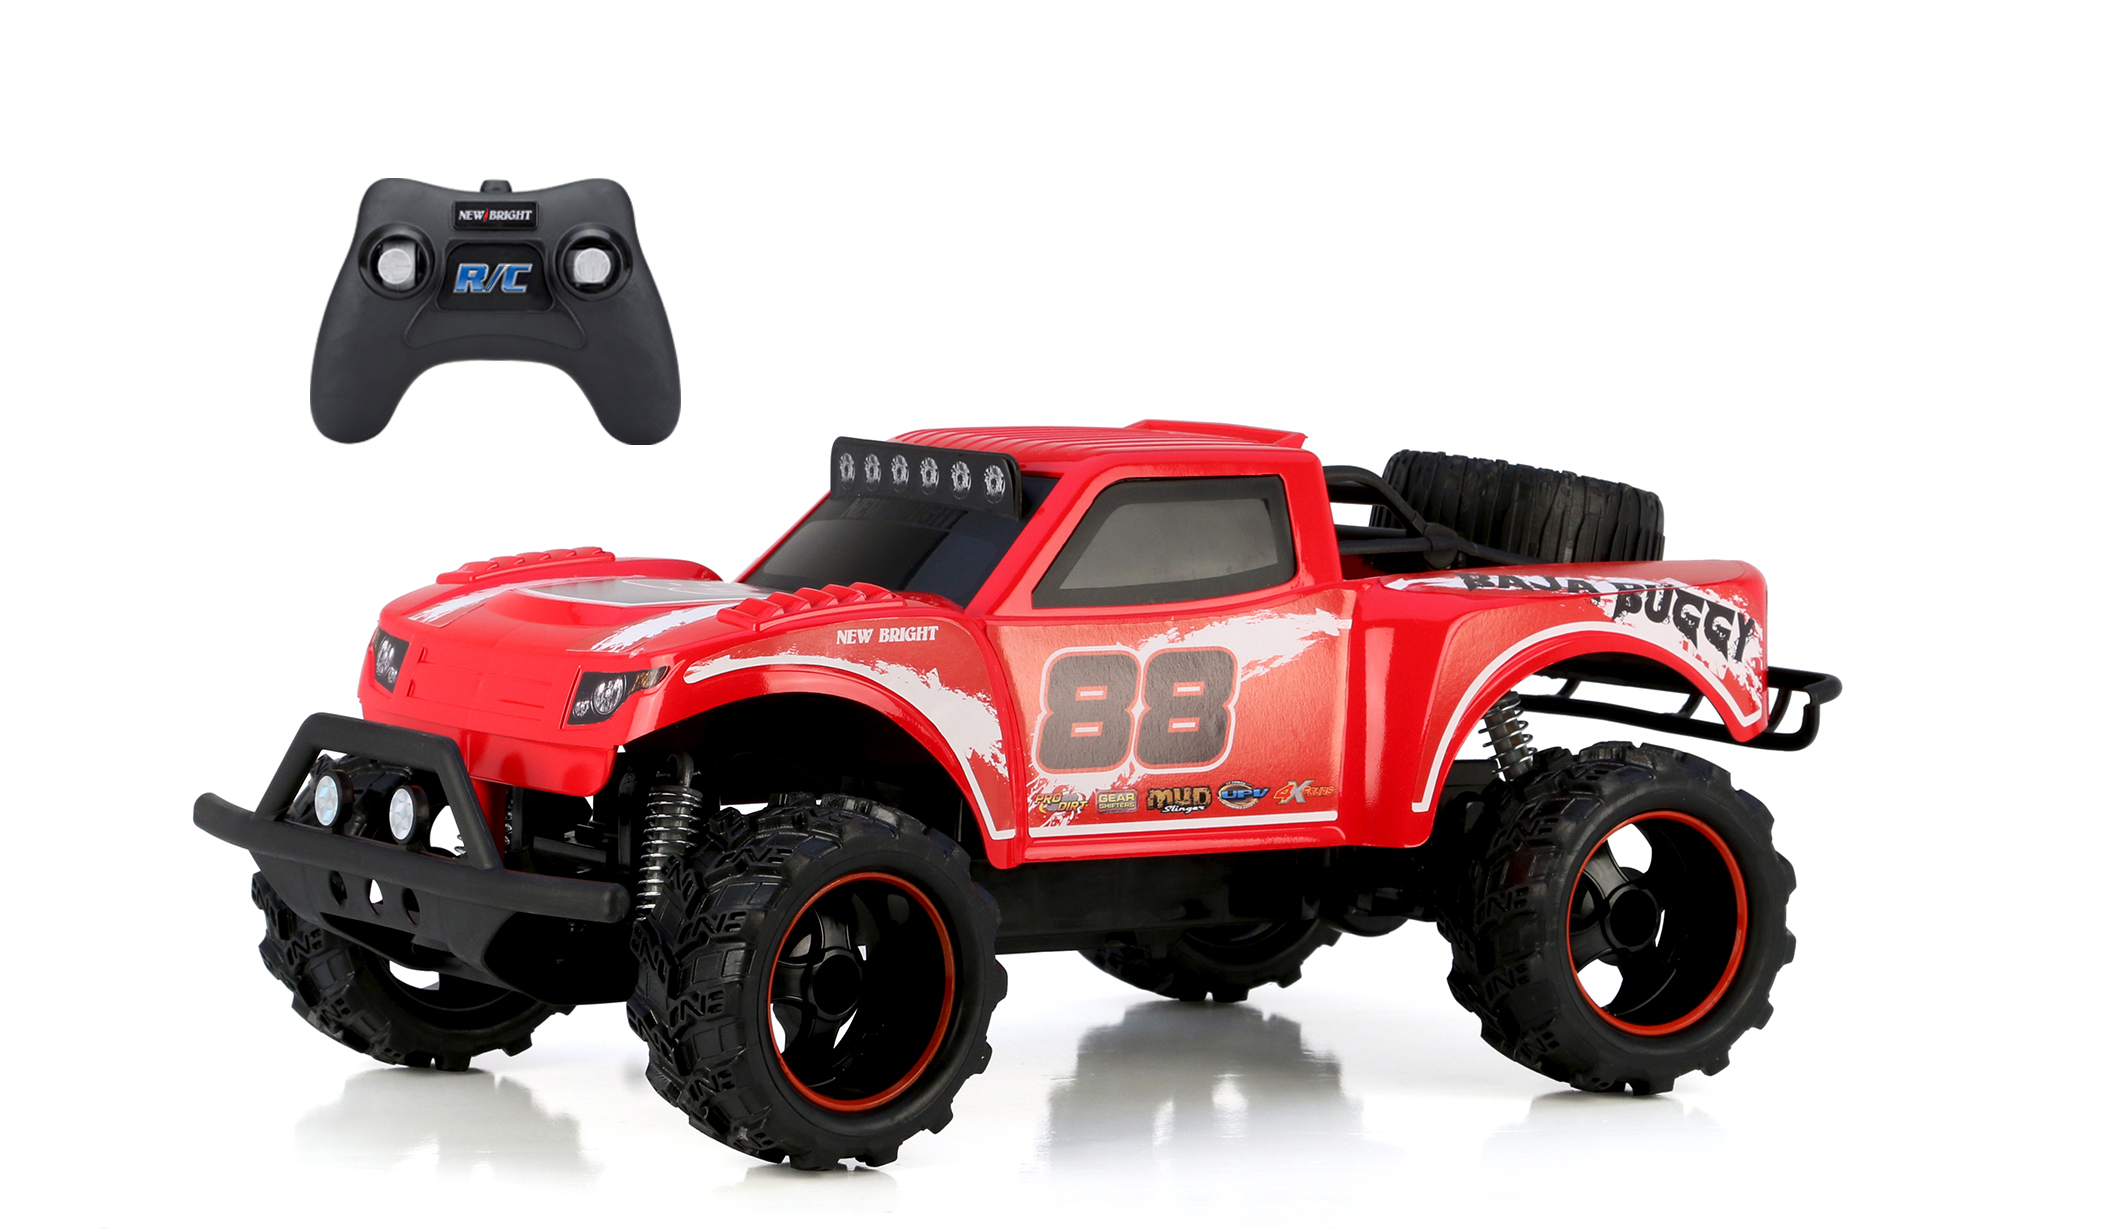 New Bright 1:14 Radio Control Baja Trophy Buggy- Red by New Bright Industrial Co., Ltd.